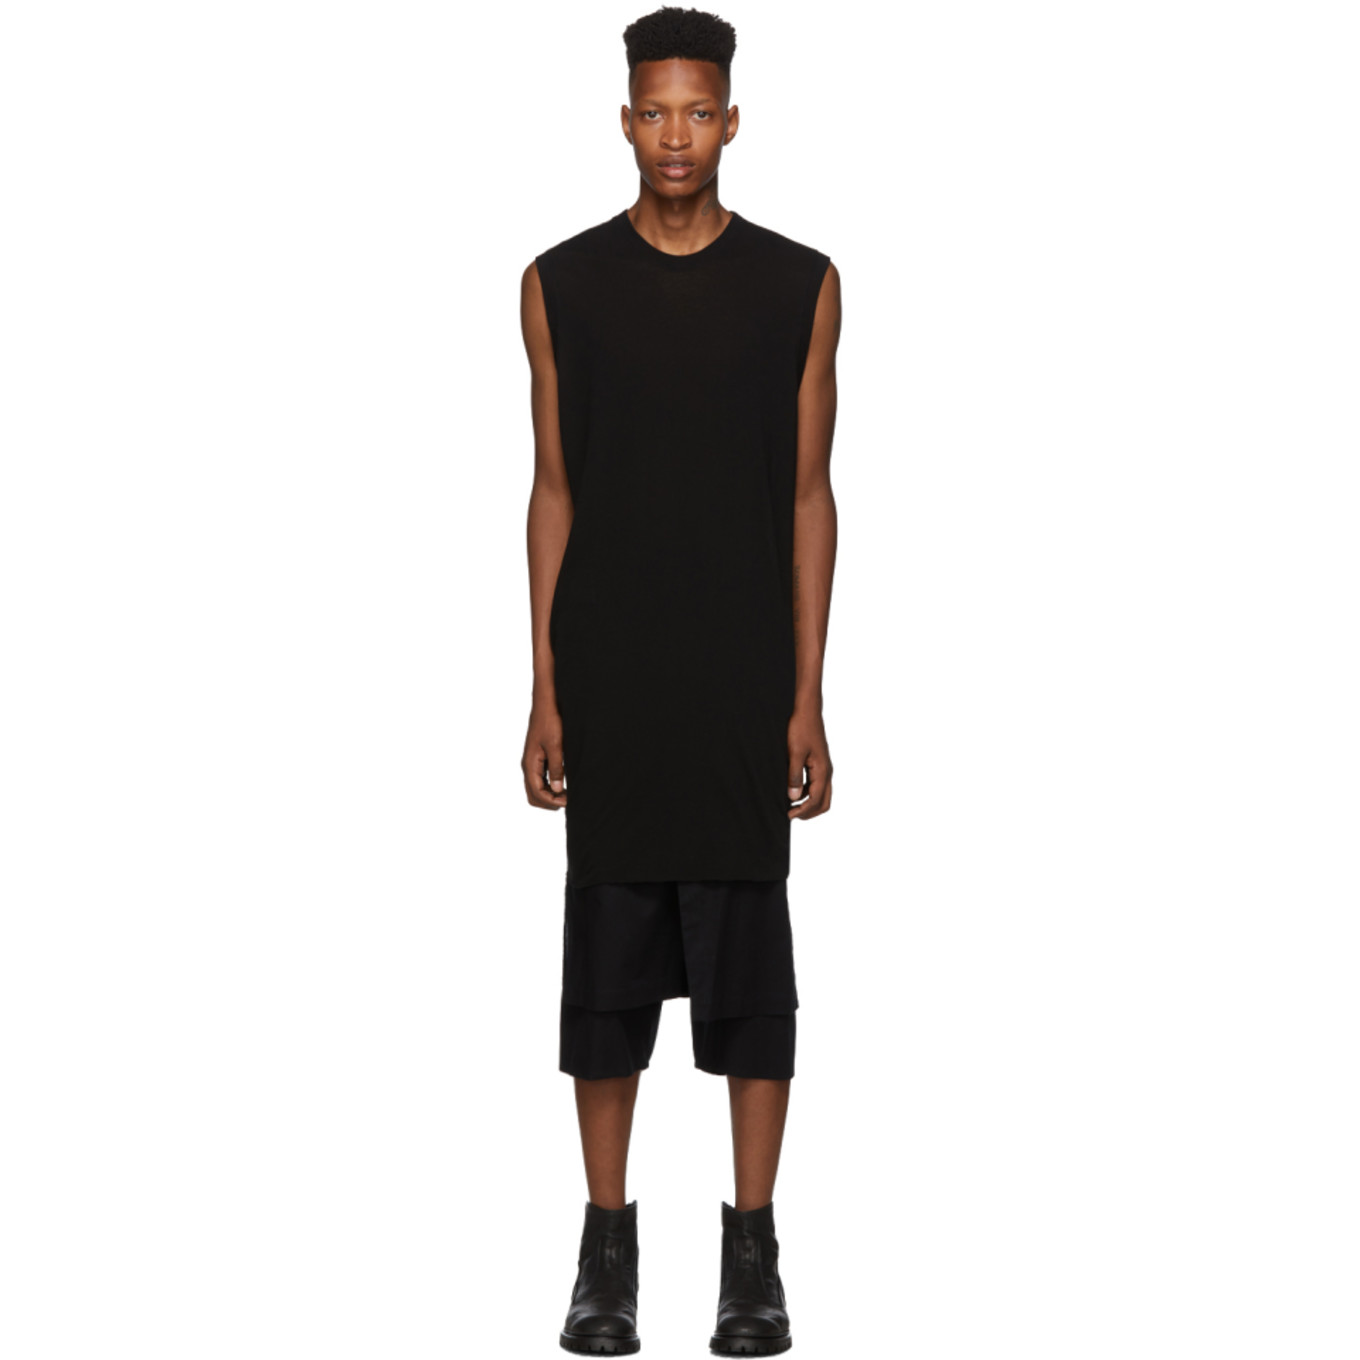 Black Draping No Sleeve Tank Top by Julius